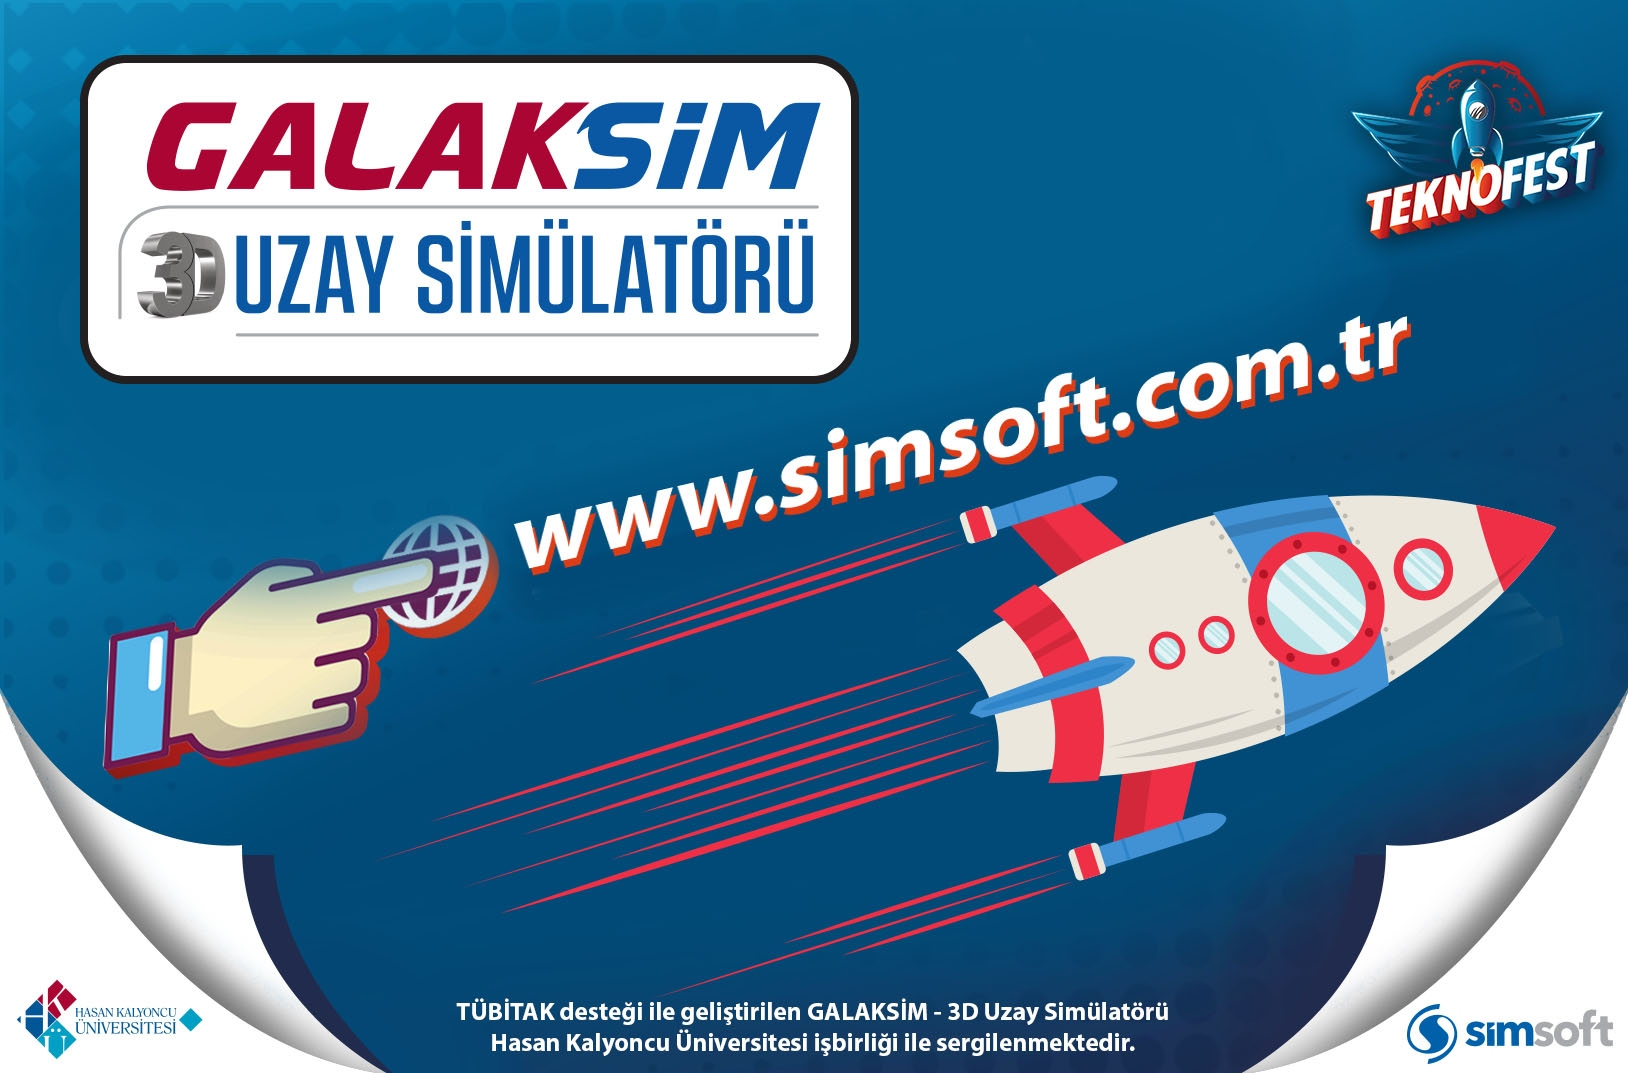 GALAKSIM-3D Space Simulator exhibited at Teknofest İstanbul